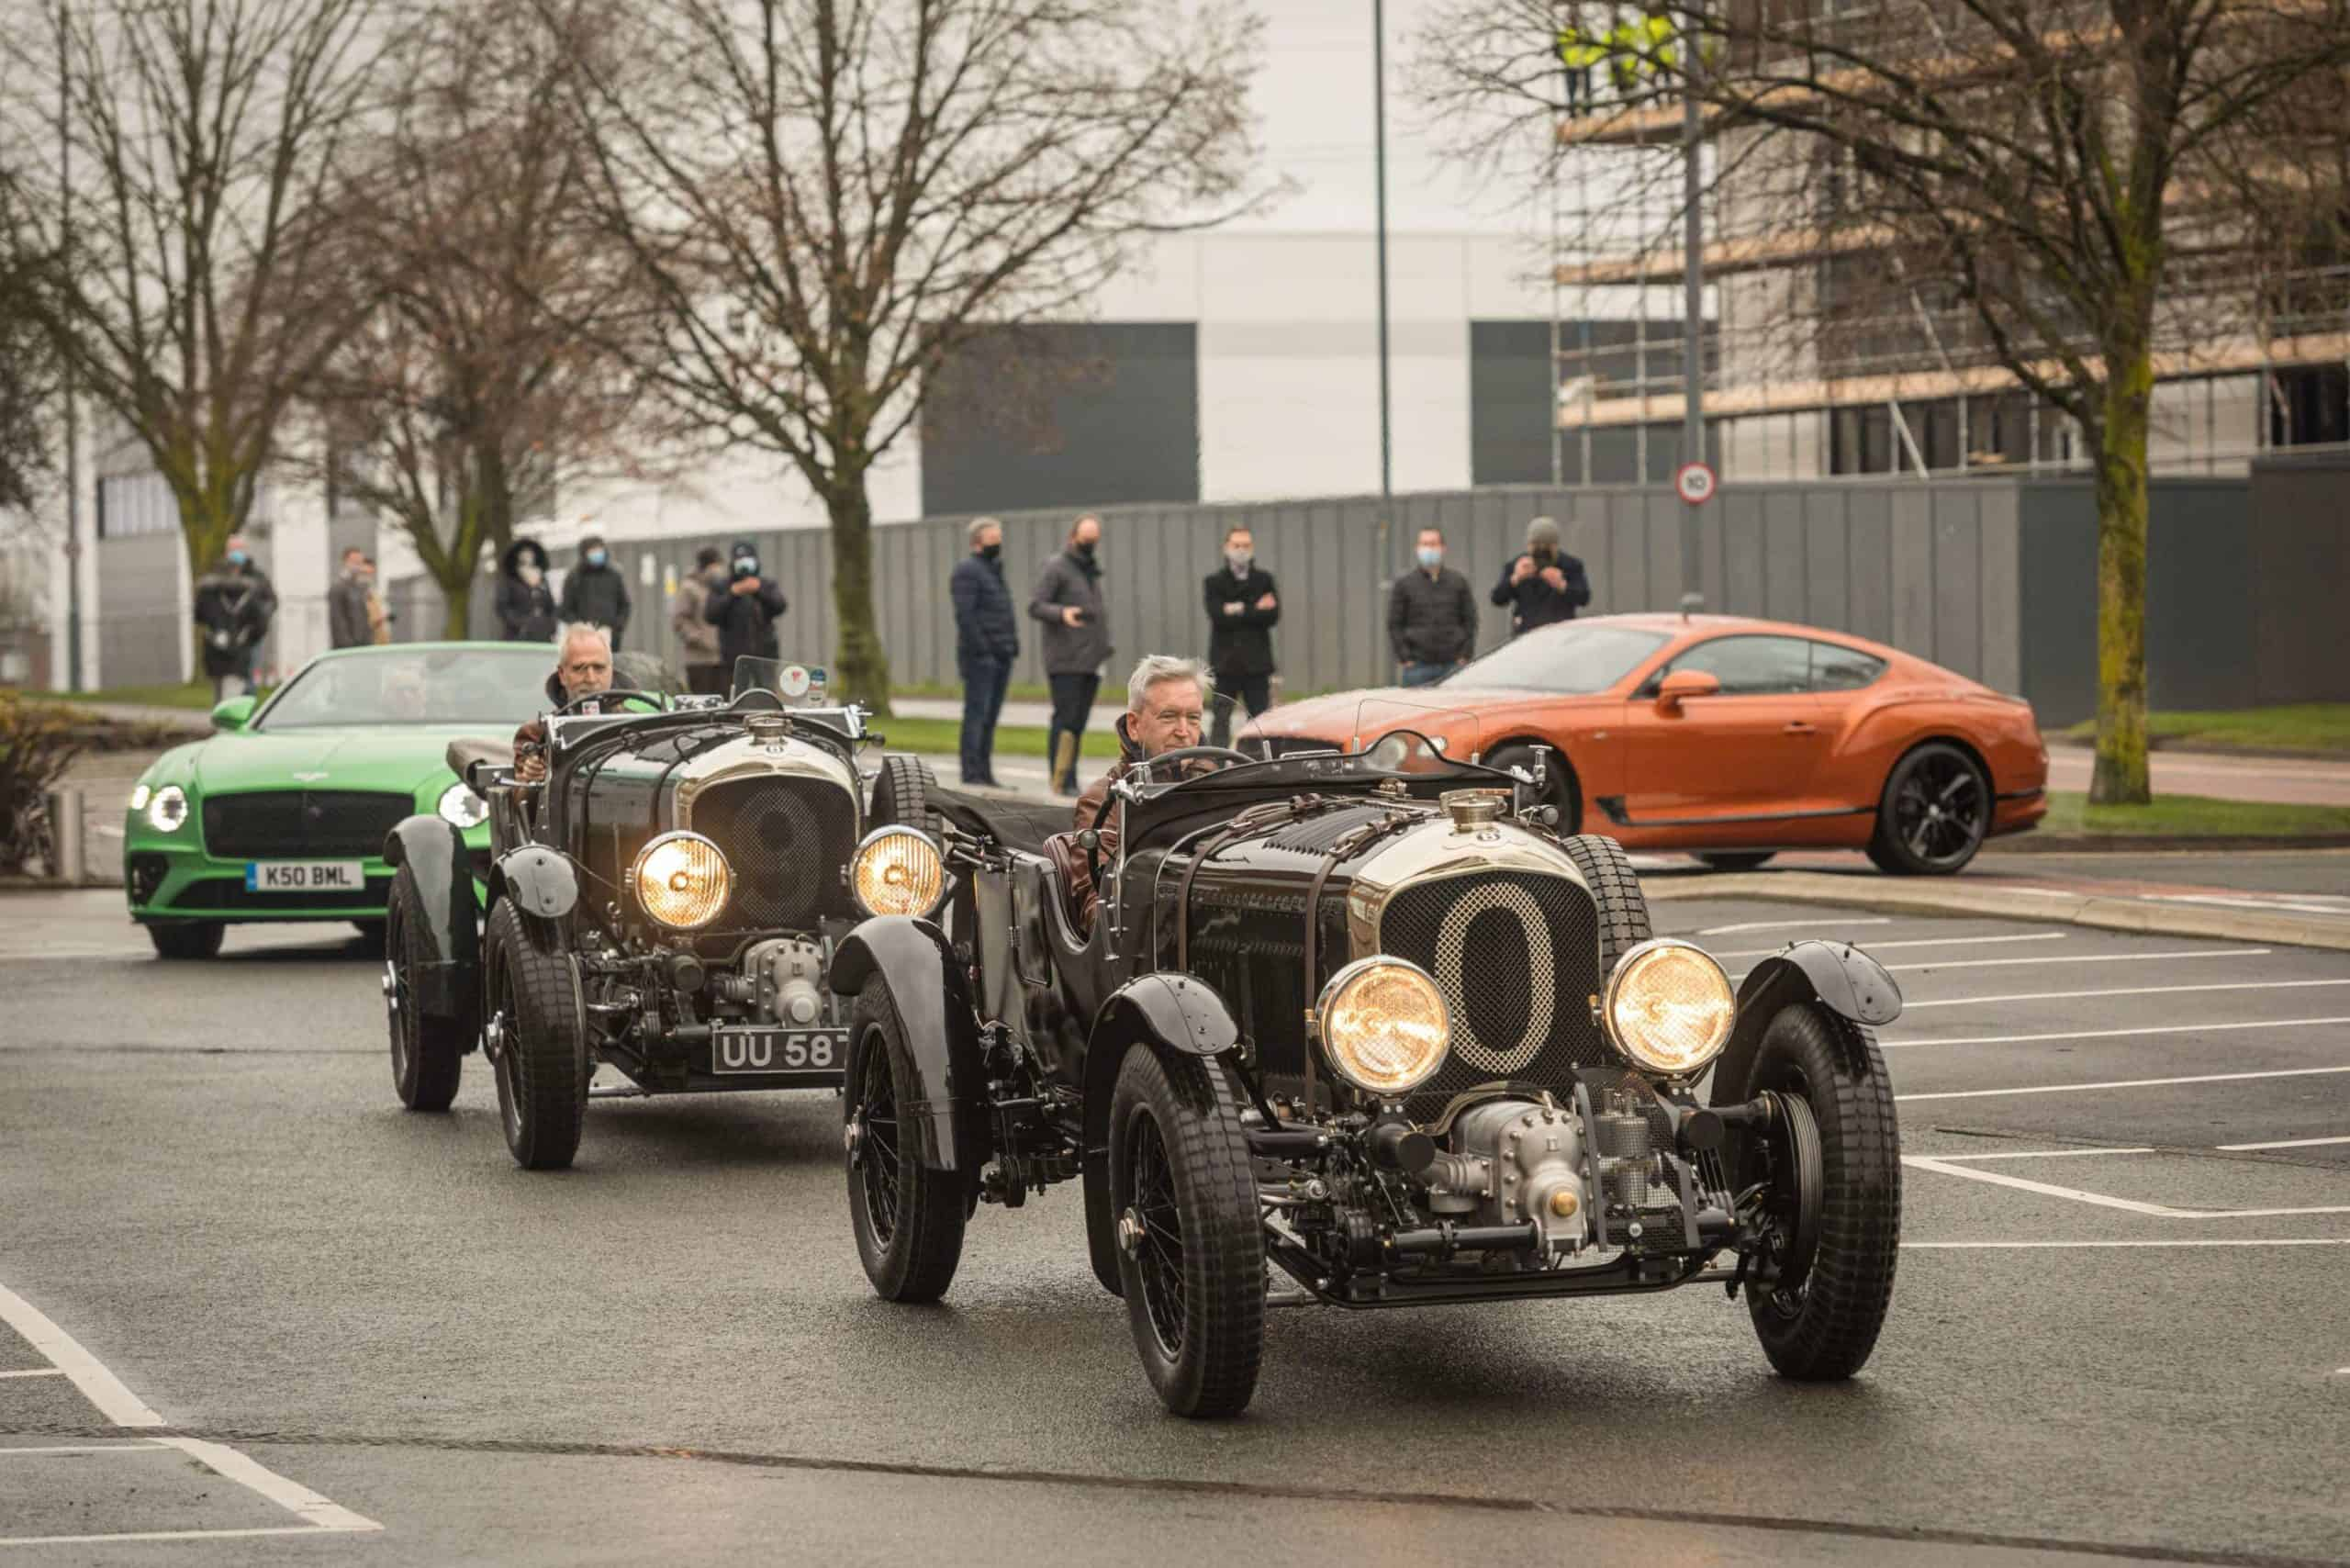 Bentley Motors celebrates the official opening of their new campus